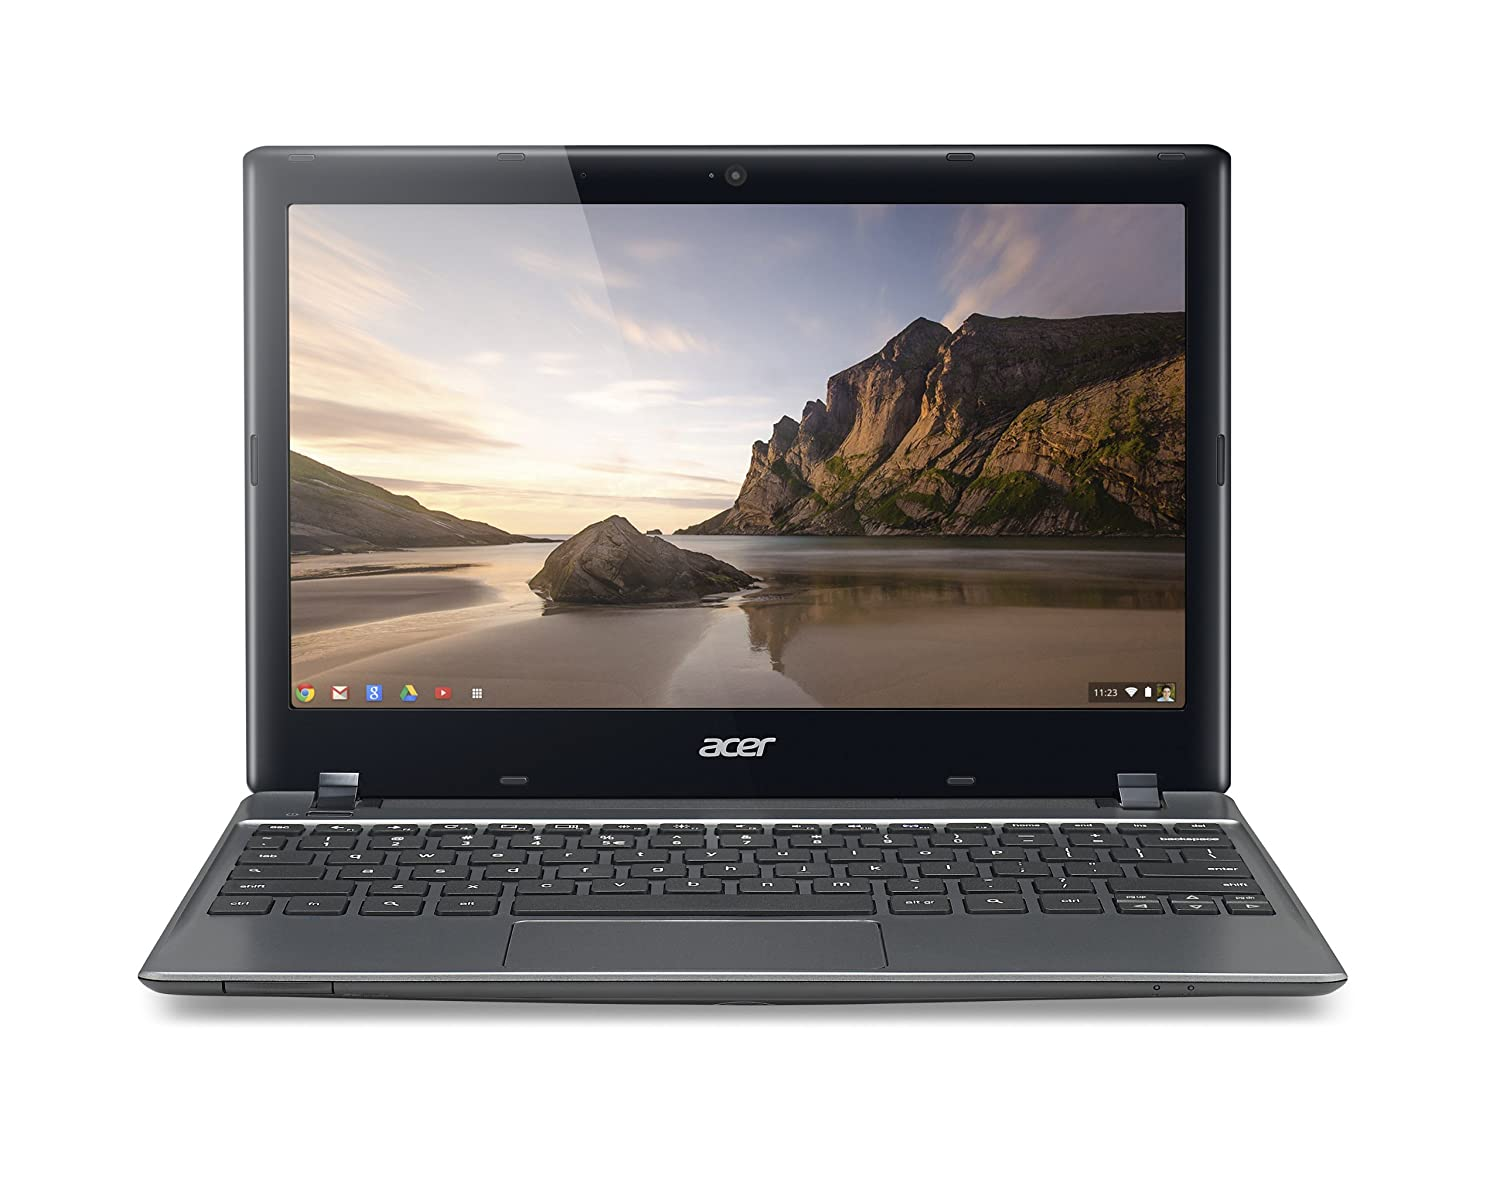 Acer C710-2833 11.6-Inch Chromebook - Iron Gray